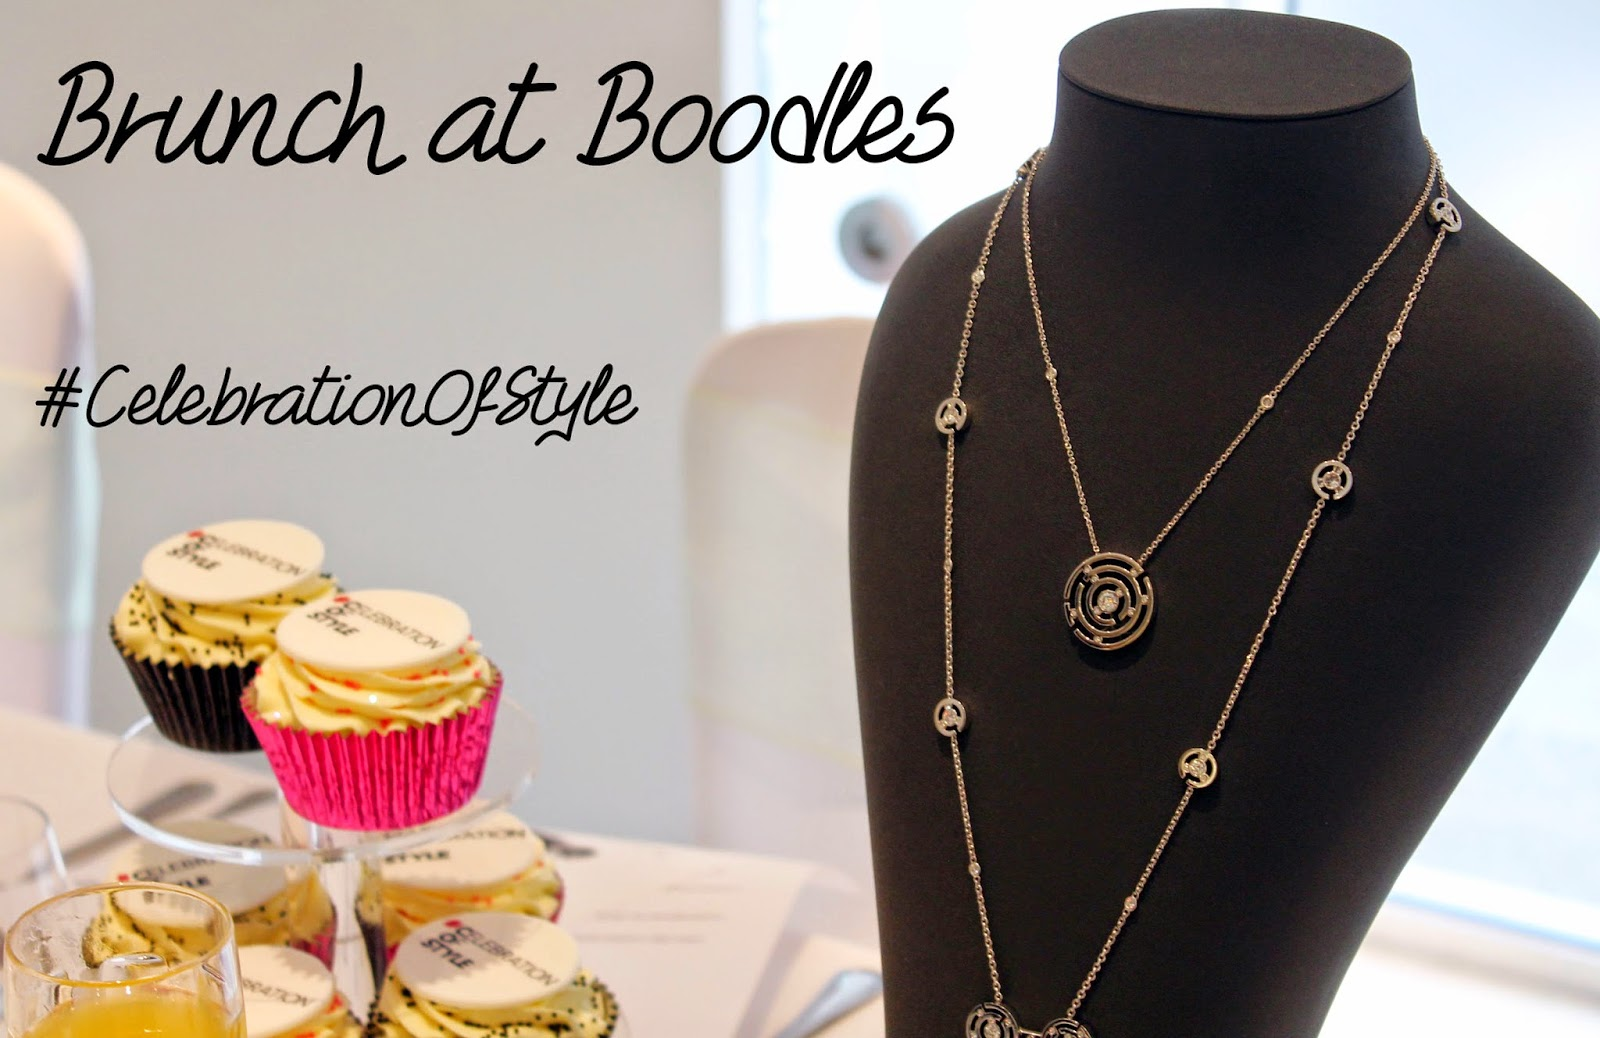 bloggers brunch at boodles liverpool as part of celebration of style 2014